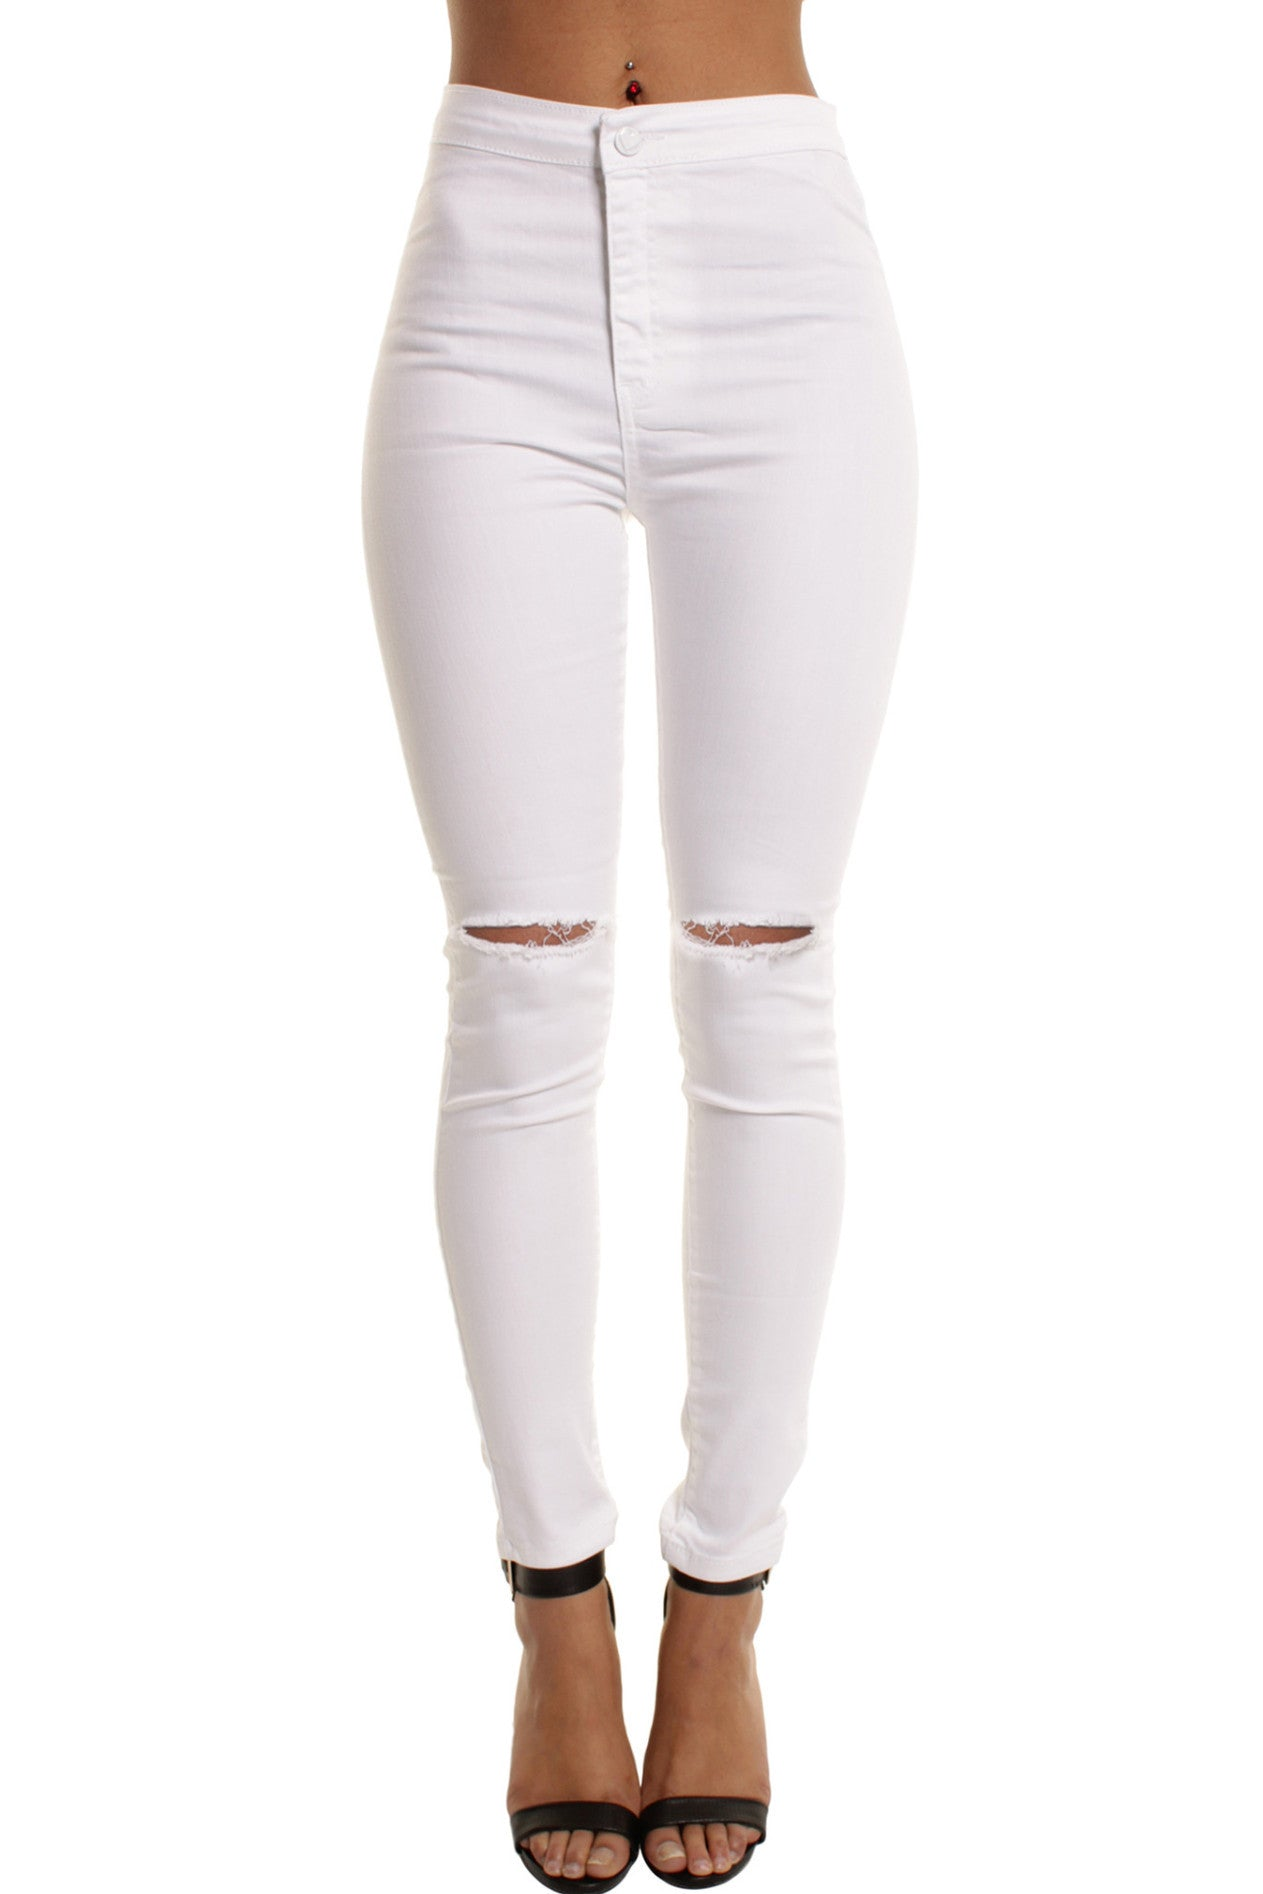 Free shipping and returns on Women's High Rise Skinny Jeans at erawtoir.ga